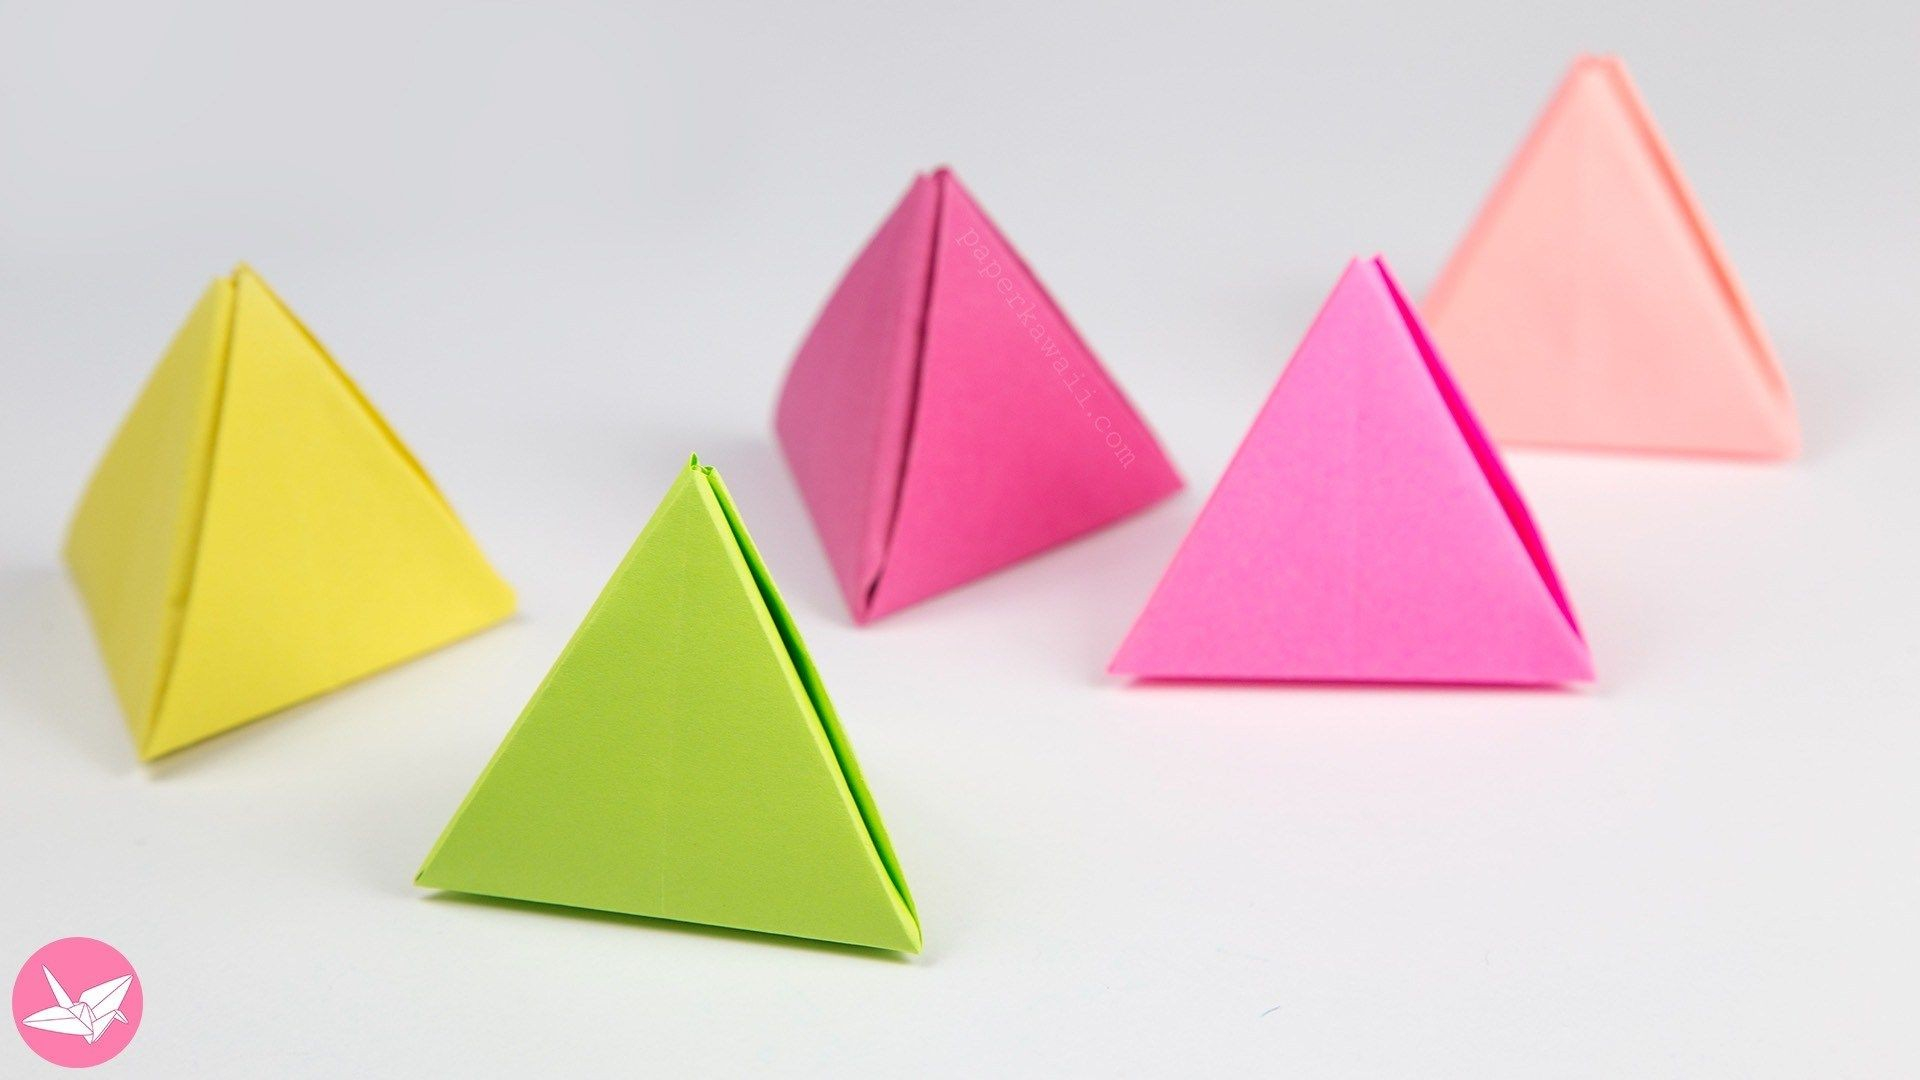 Handmade Paper Craft Gifts You can Make Right Now Pyramid Papercraft Origami Pyramid Gift Box Pot Or Decoration